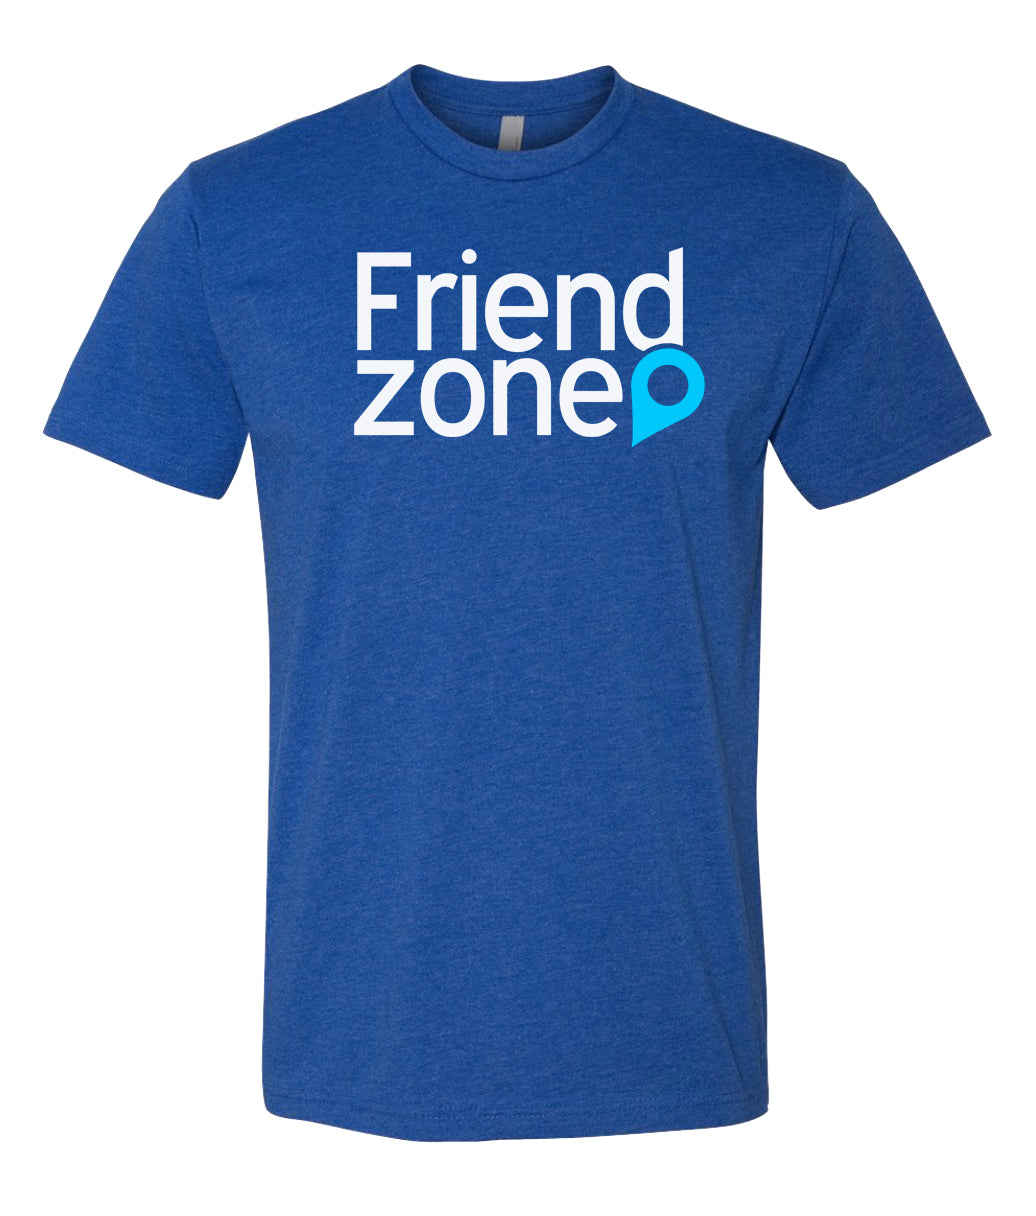 royal friend zone crewneck t shirt